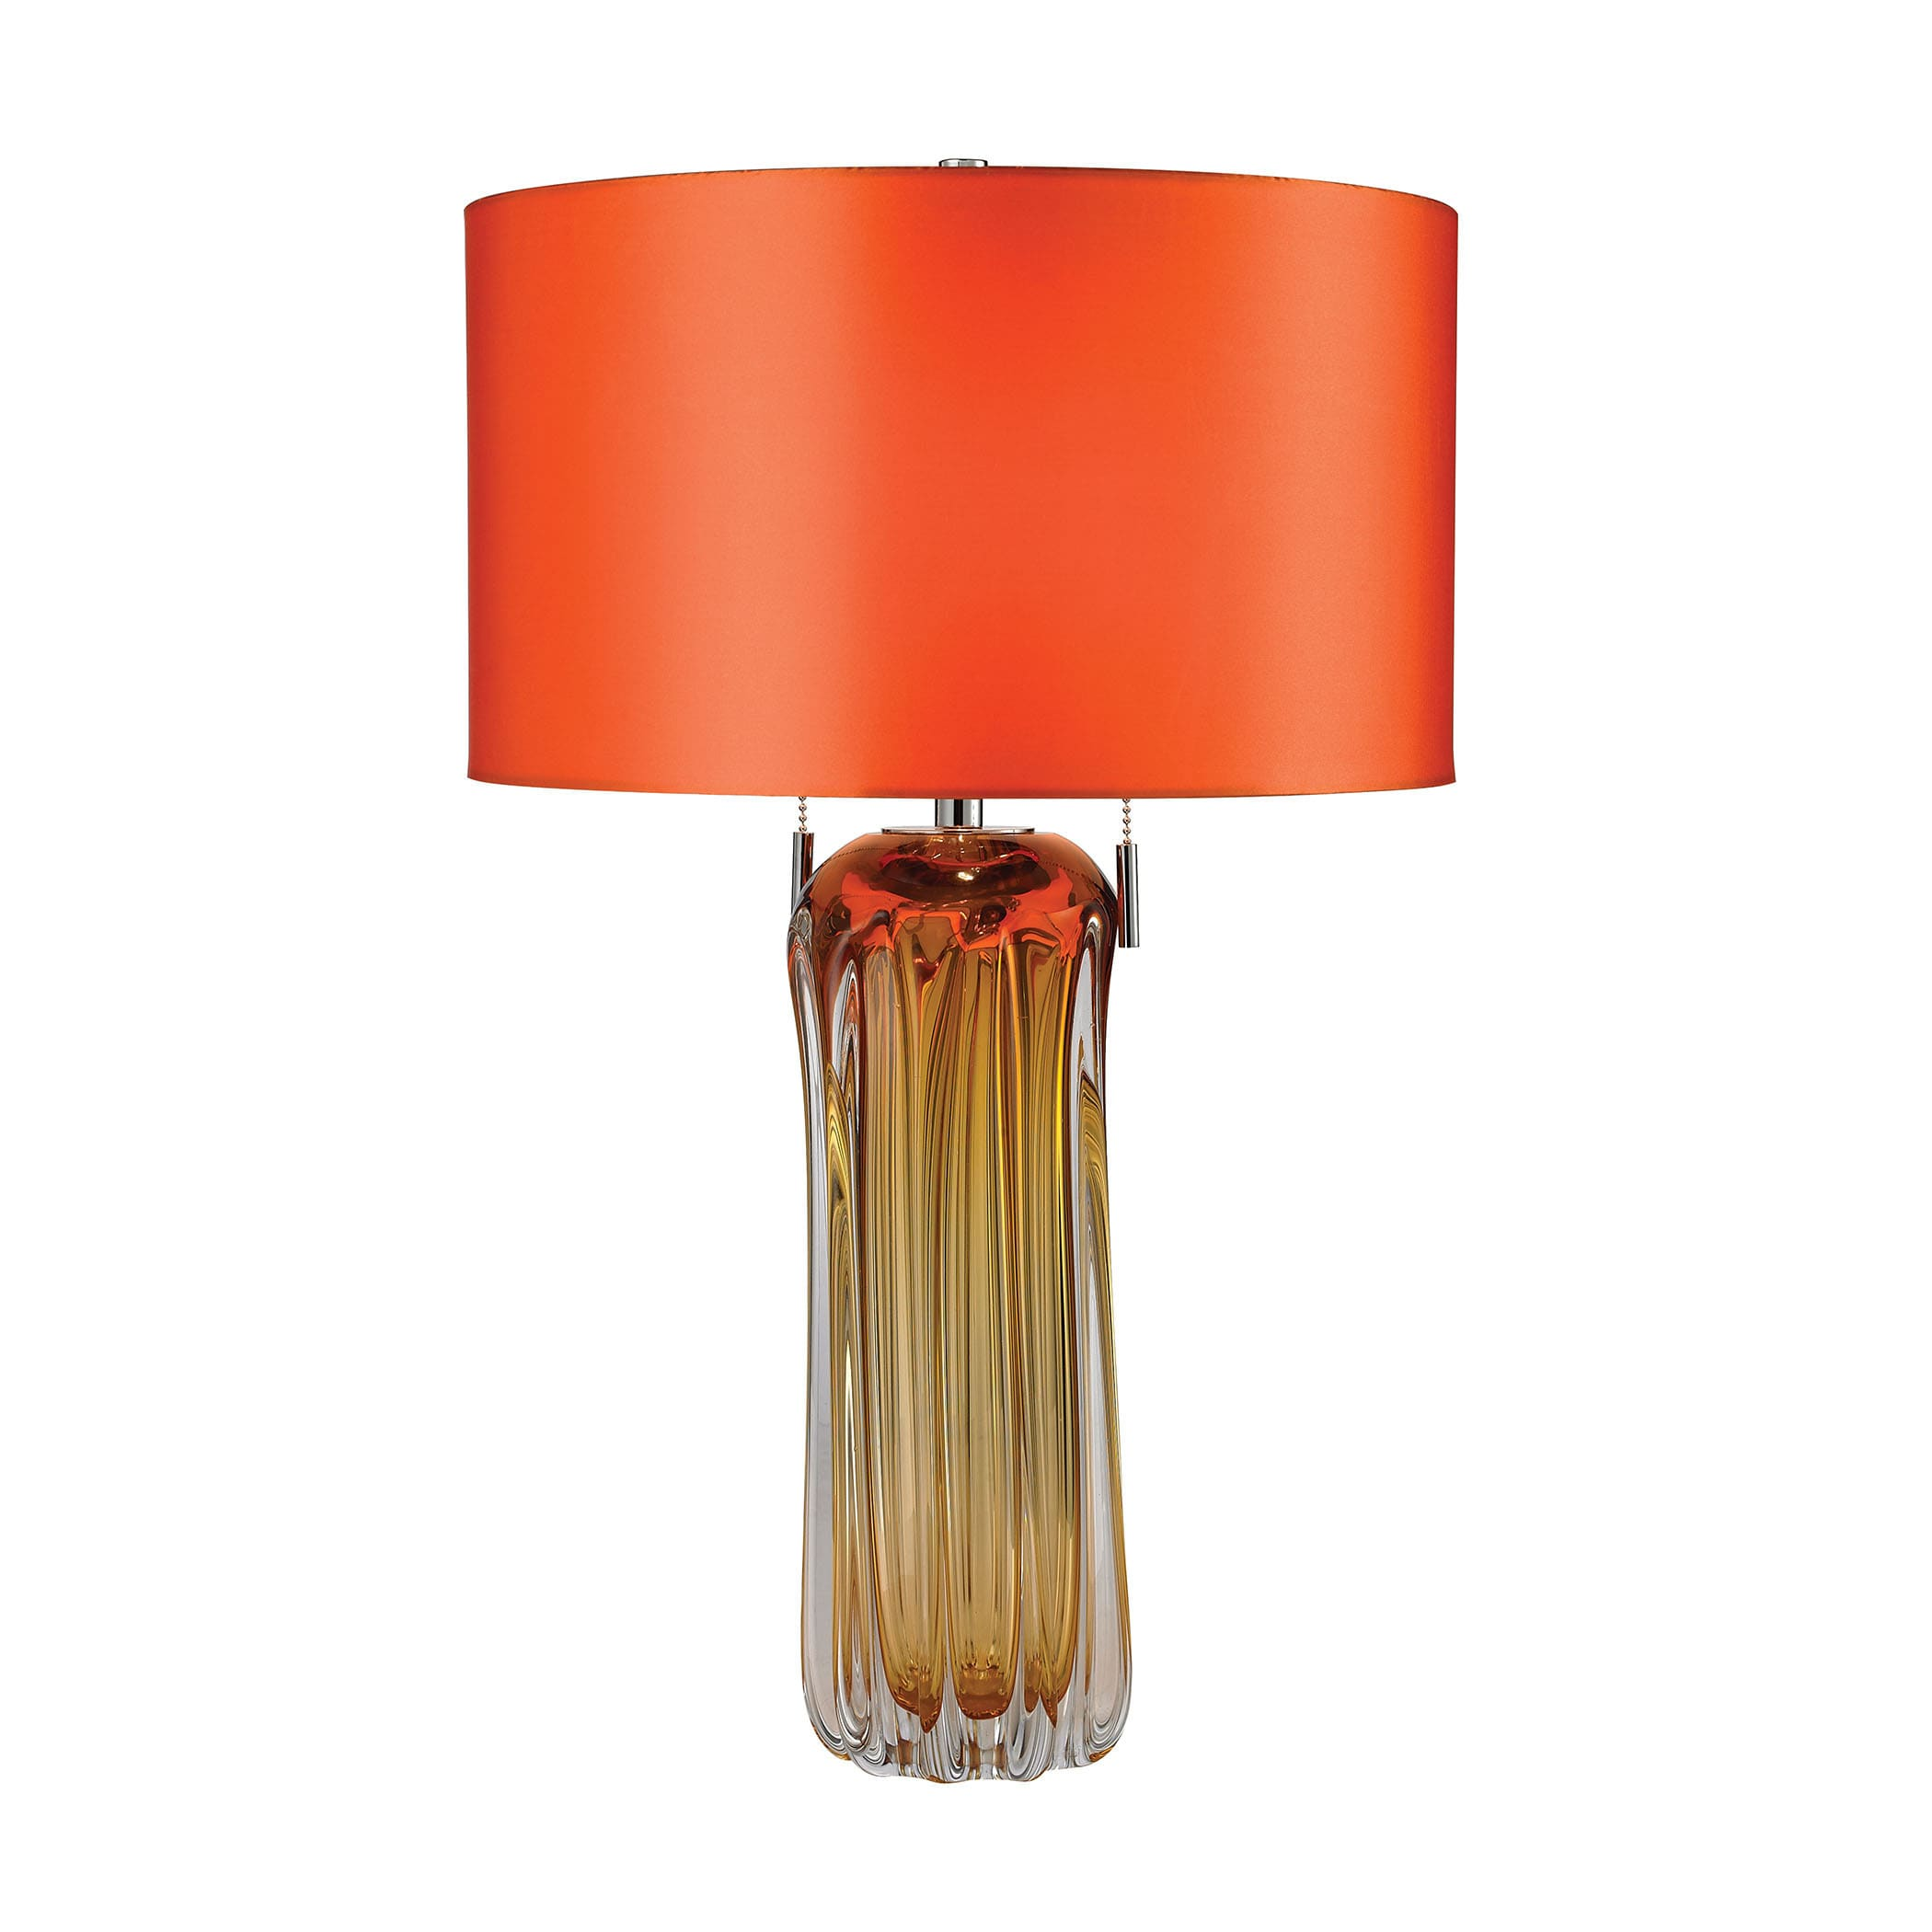 Dimond Ferrara Blown Glass Amber Table Lamp   Free Shipping Today    Overstock   17429971